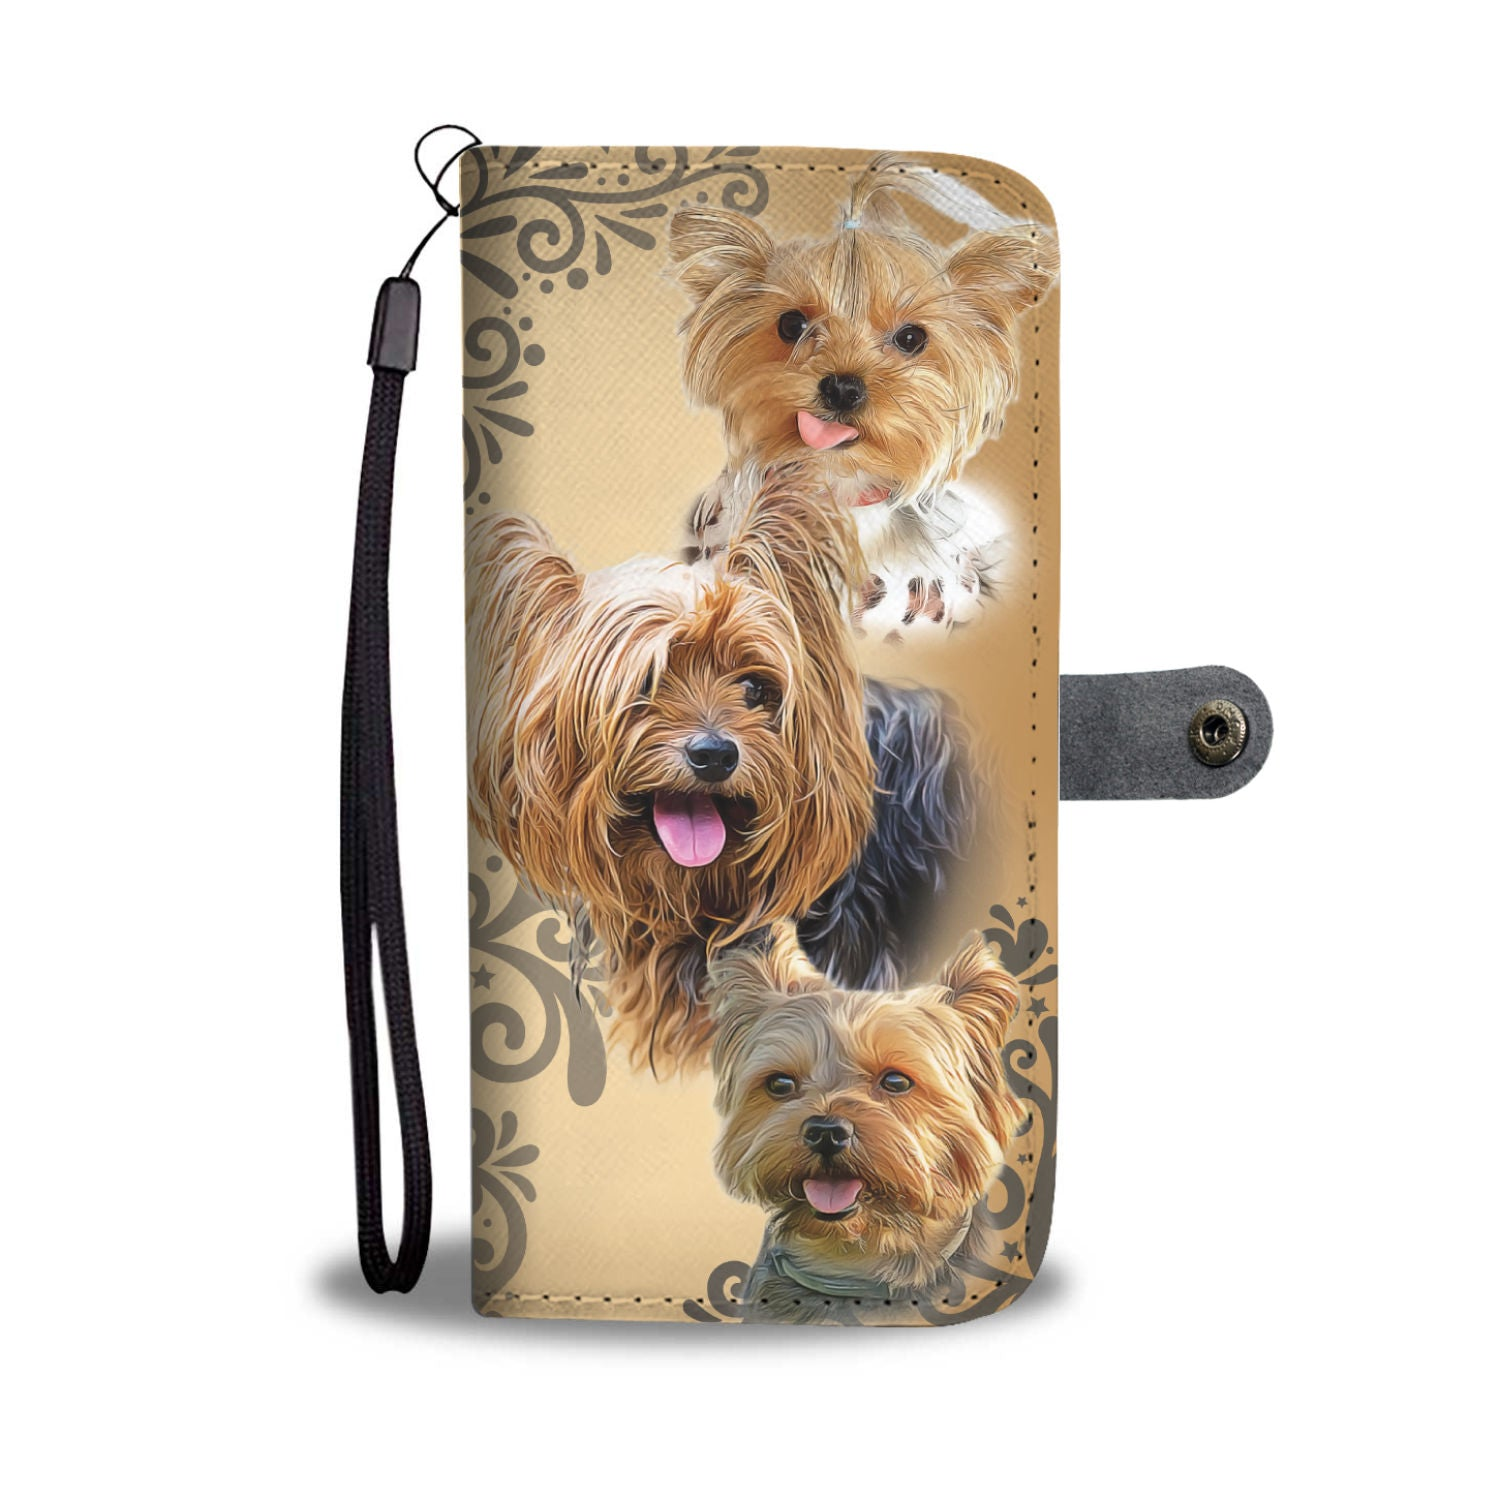 Beautiful Custom Designed Yorkshire Love Dog Wallet Phone Case